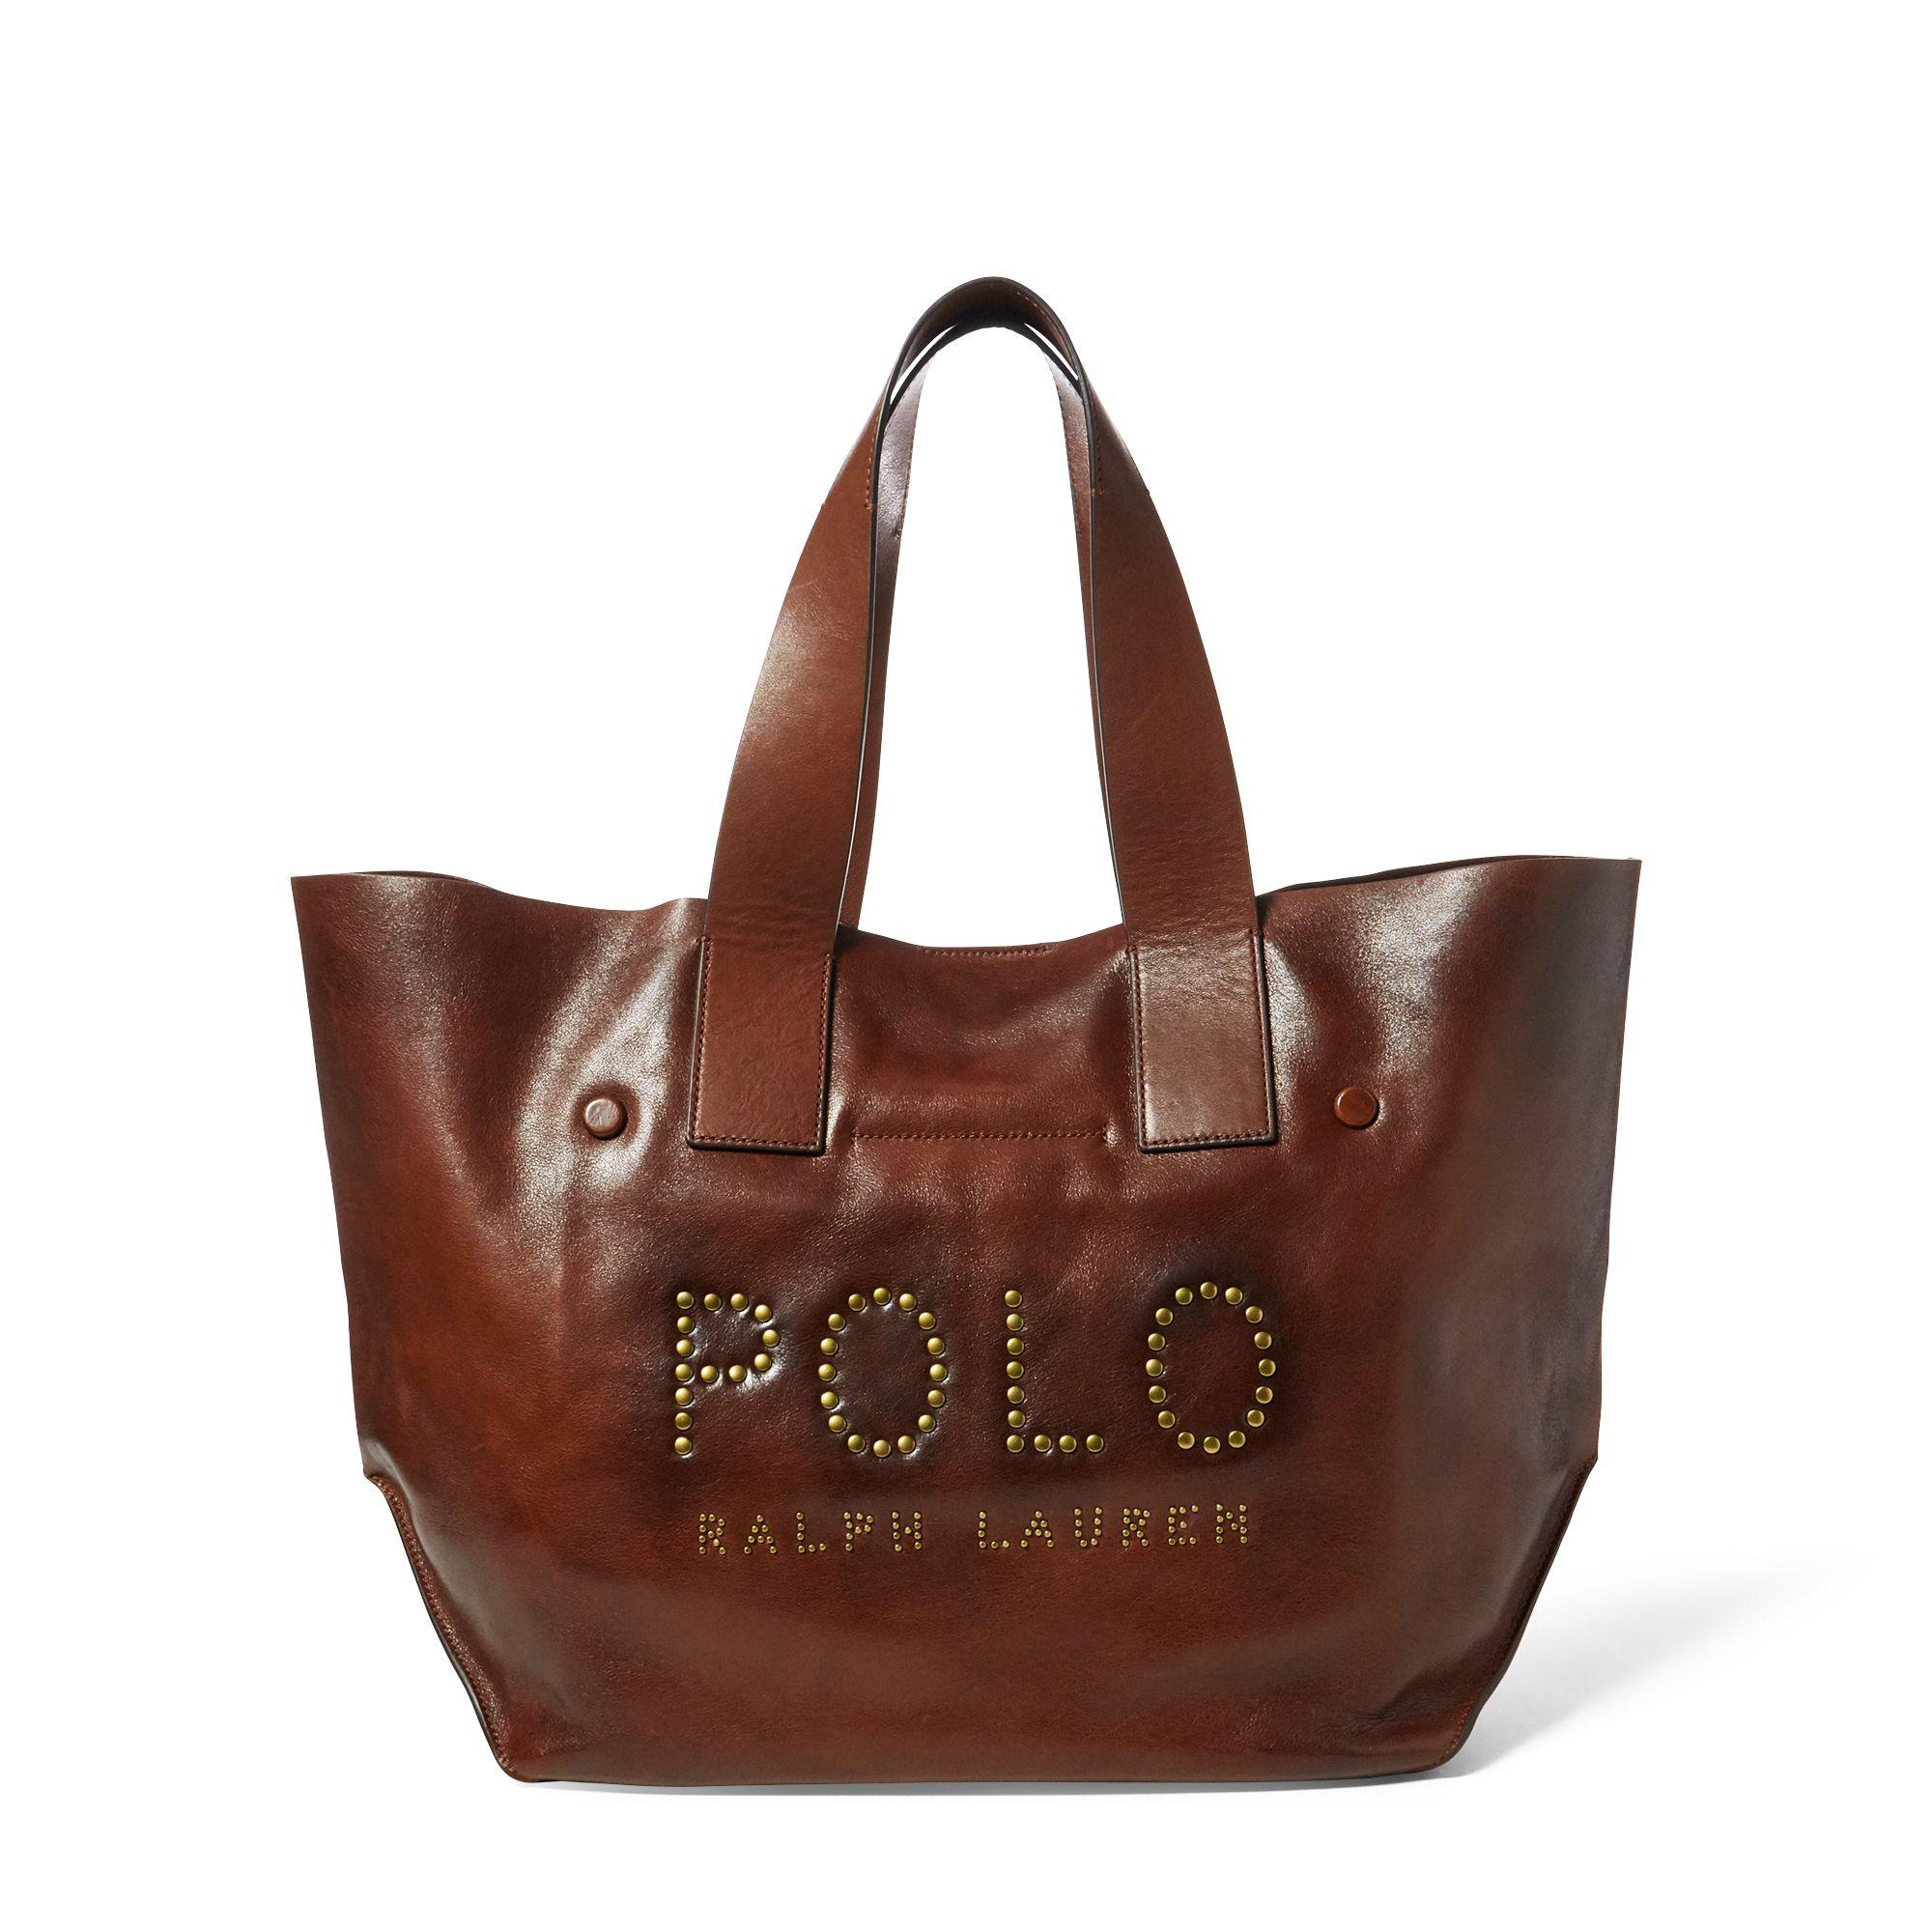 Polo Ralph Lauren Studded Leather Polo Tote Bag in Brown - Lyst 01dd39432ebc6